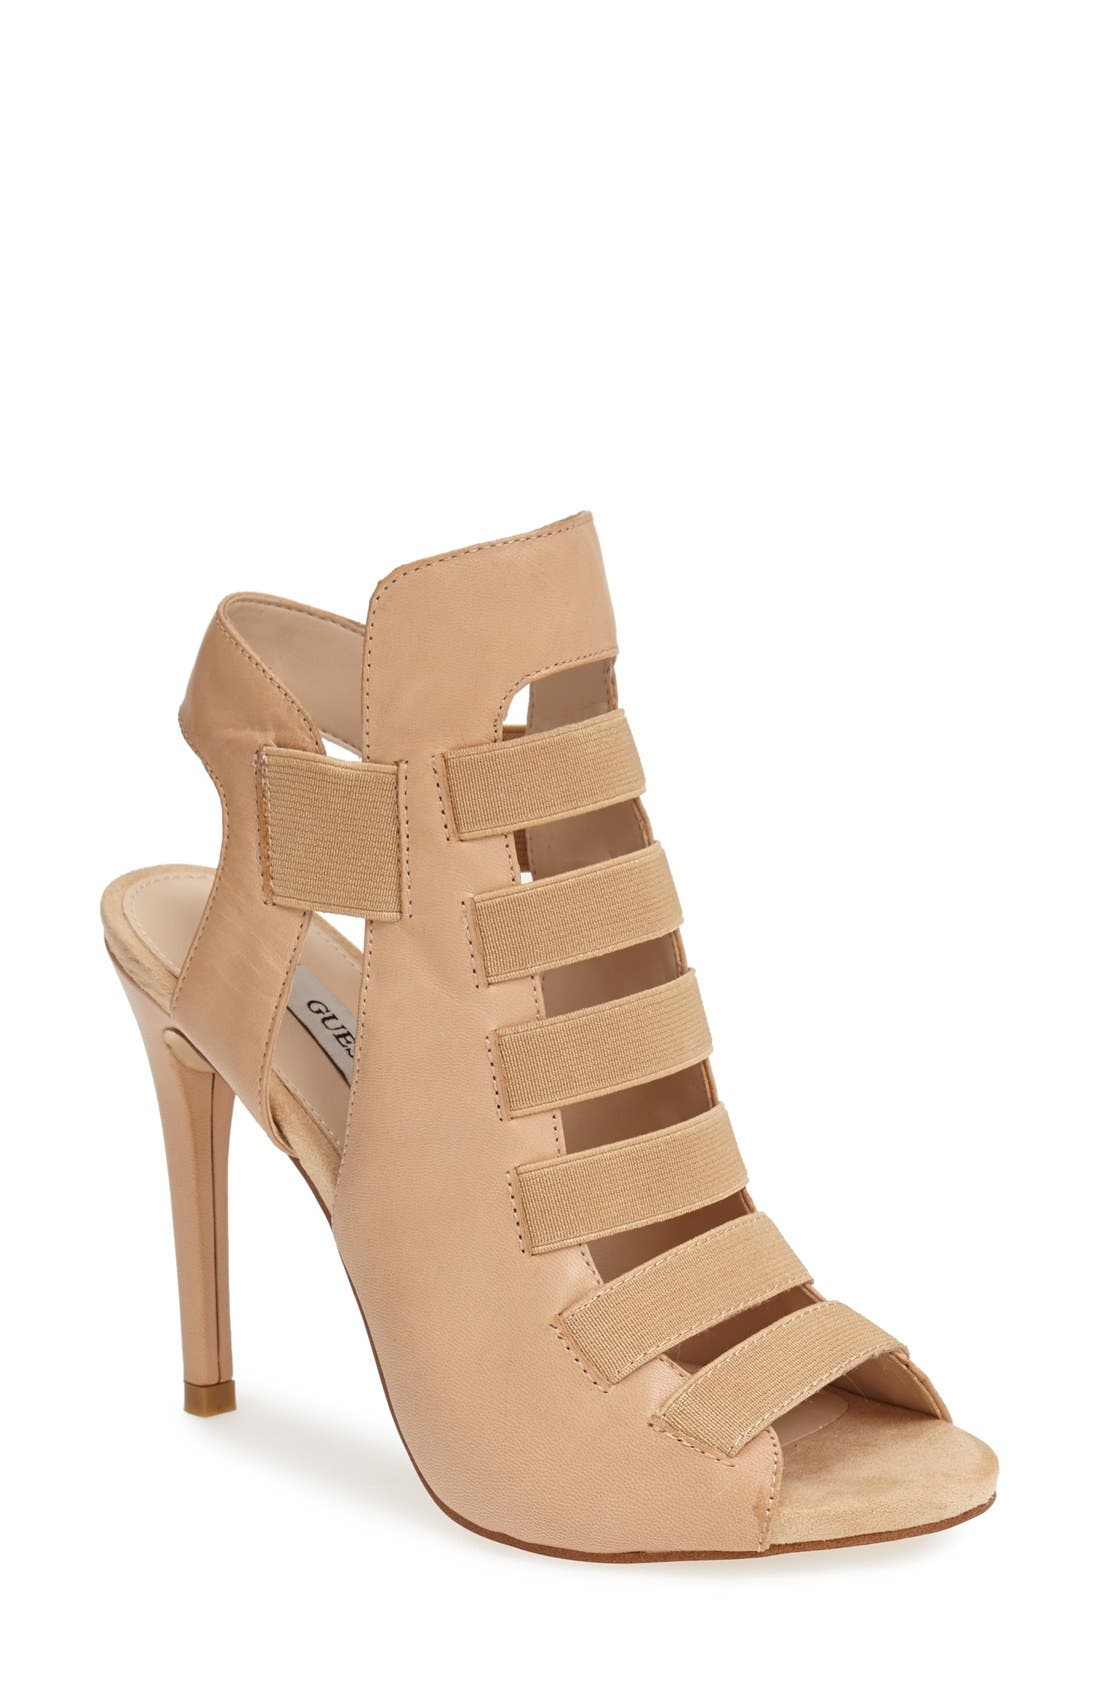 Main Image - GUESS 'Chica' Strappy Sandal (Women)